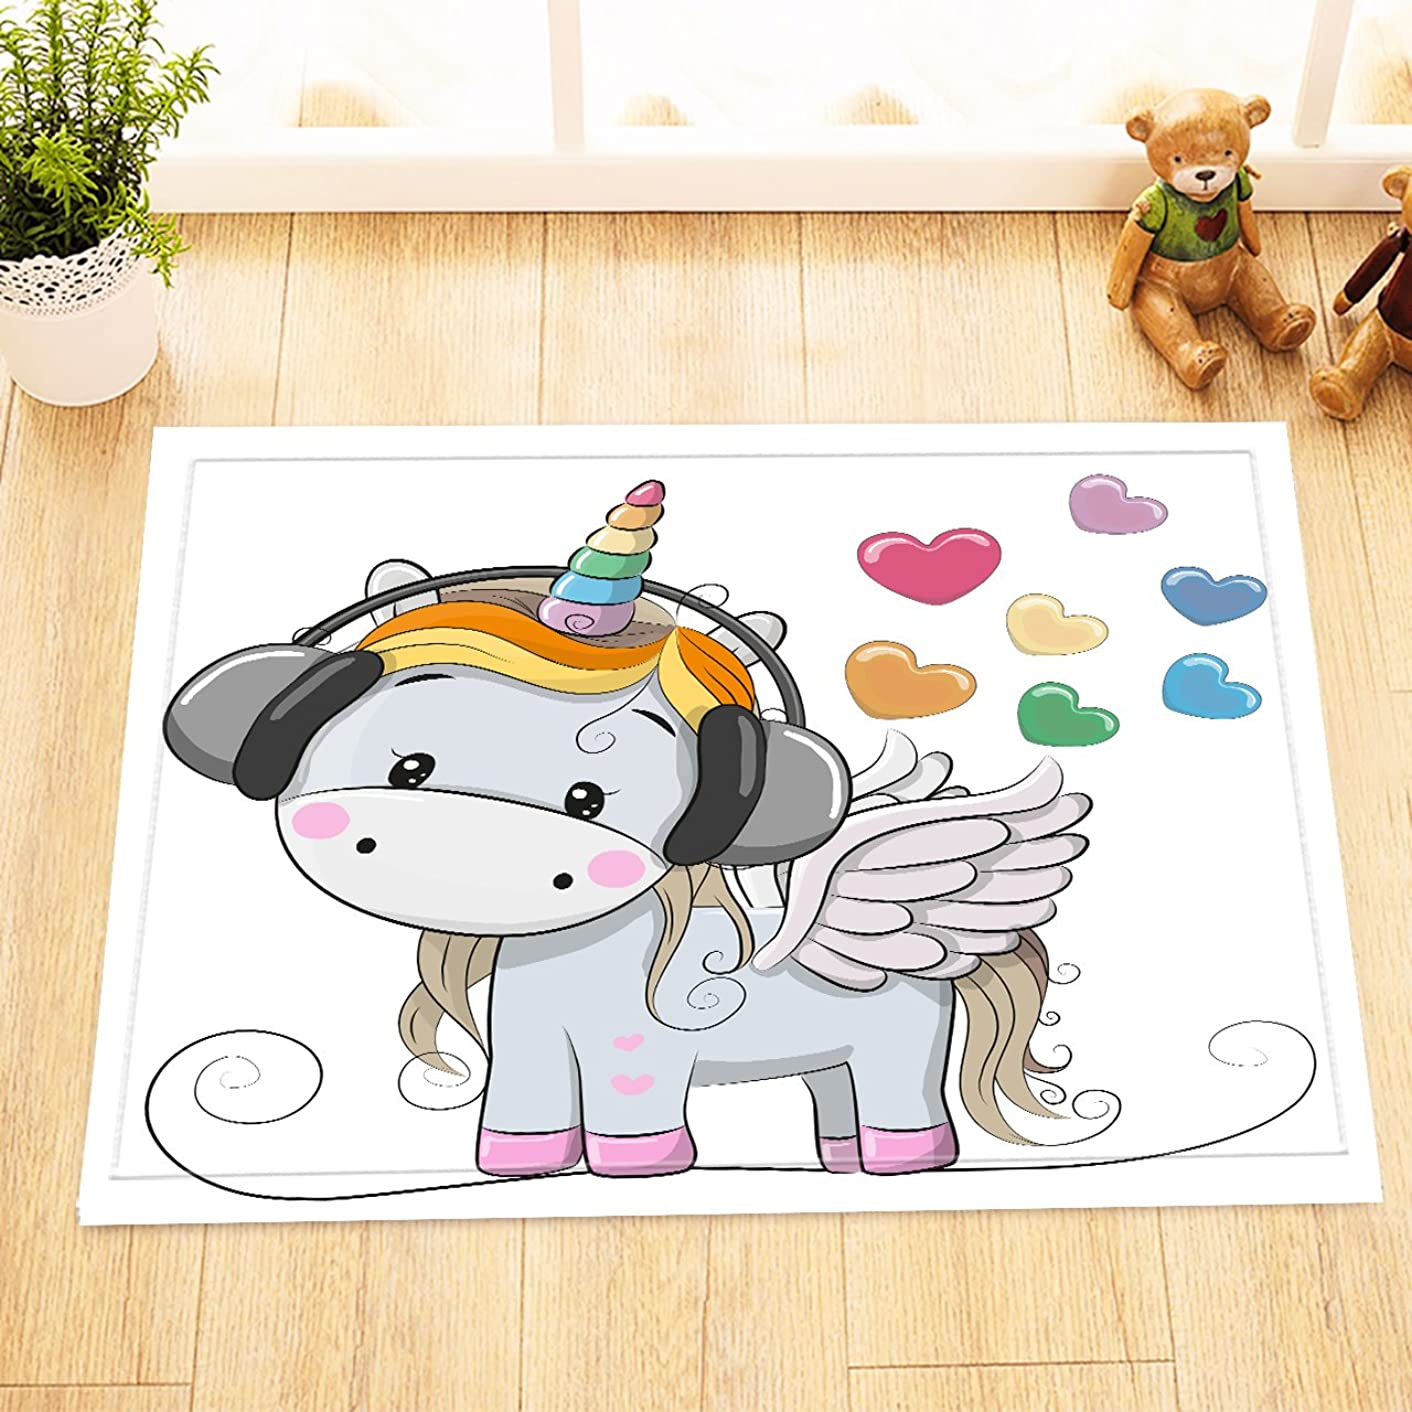 LB Cute Cartoon Unicorn n Music Heart Rugs for Bedroom Decoration, Soft Flannel and Non Slip Rubber Backing, Unicorn Theme Design House Decor for Bathroom 15 x 23 Inches